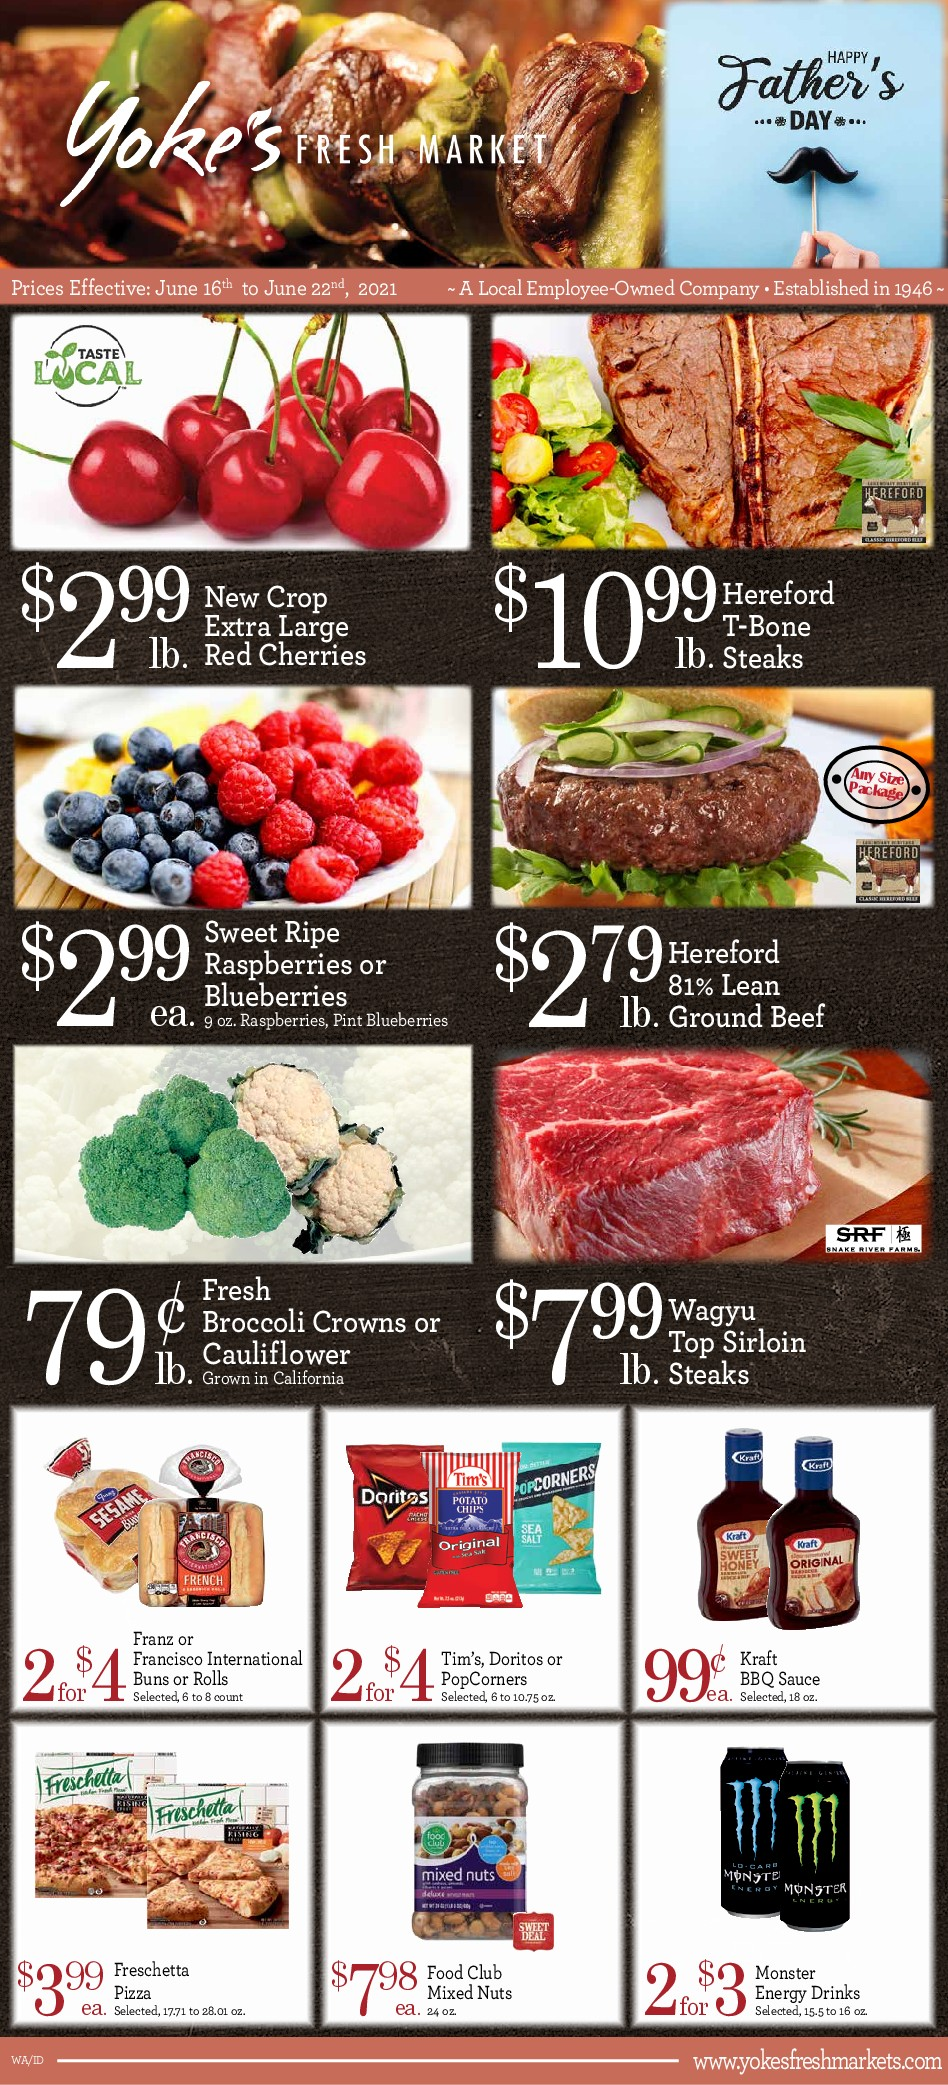 Page 1 of 06.16.21 Weekly Ad